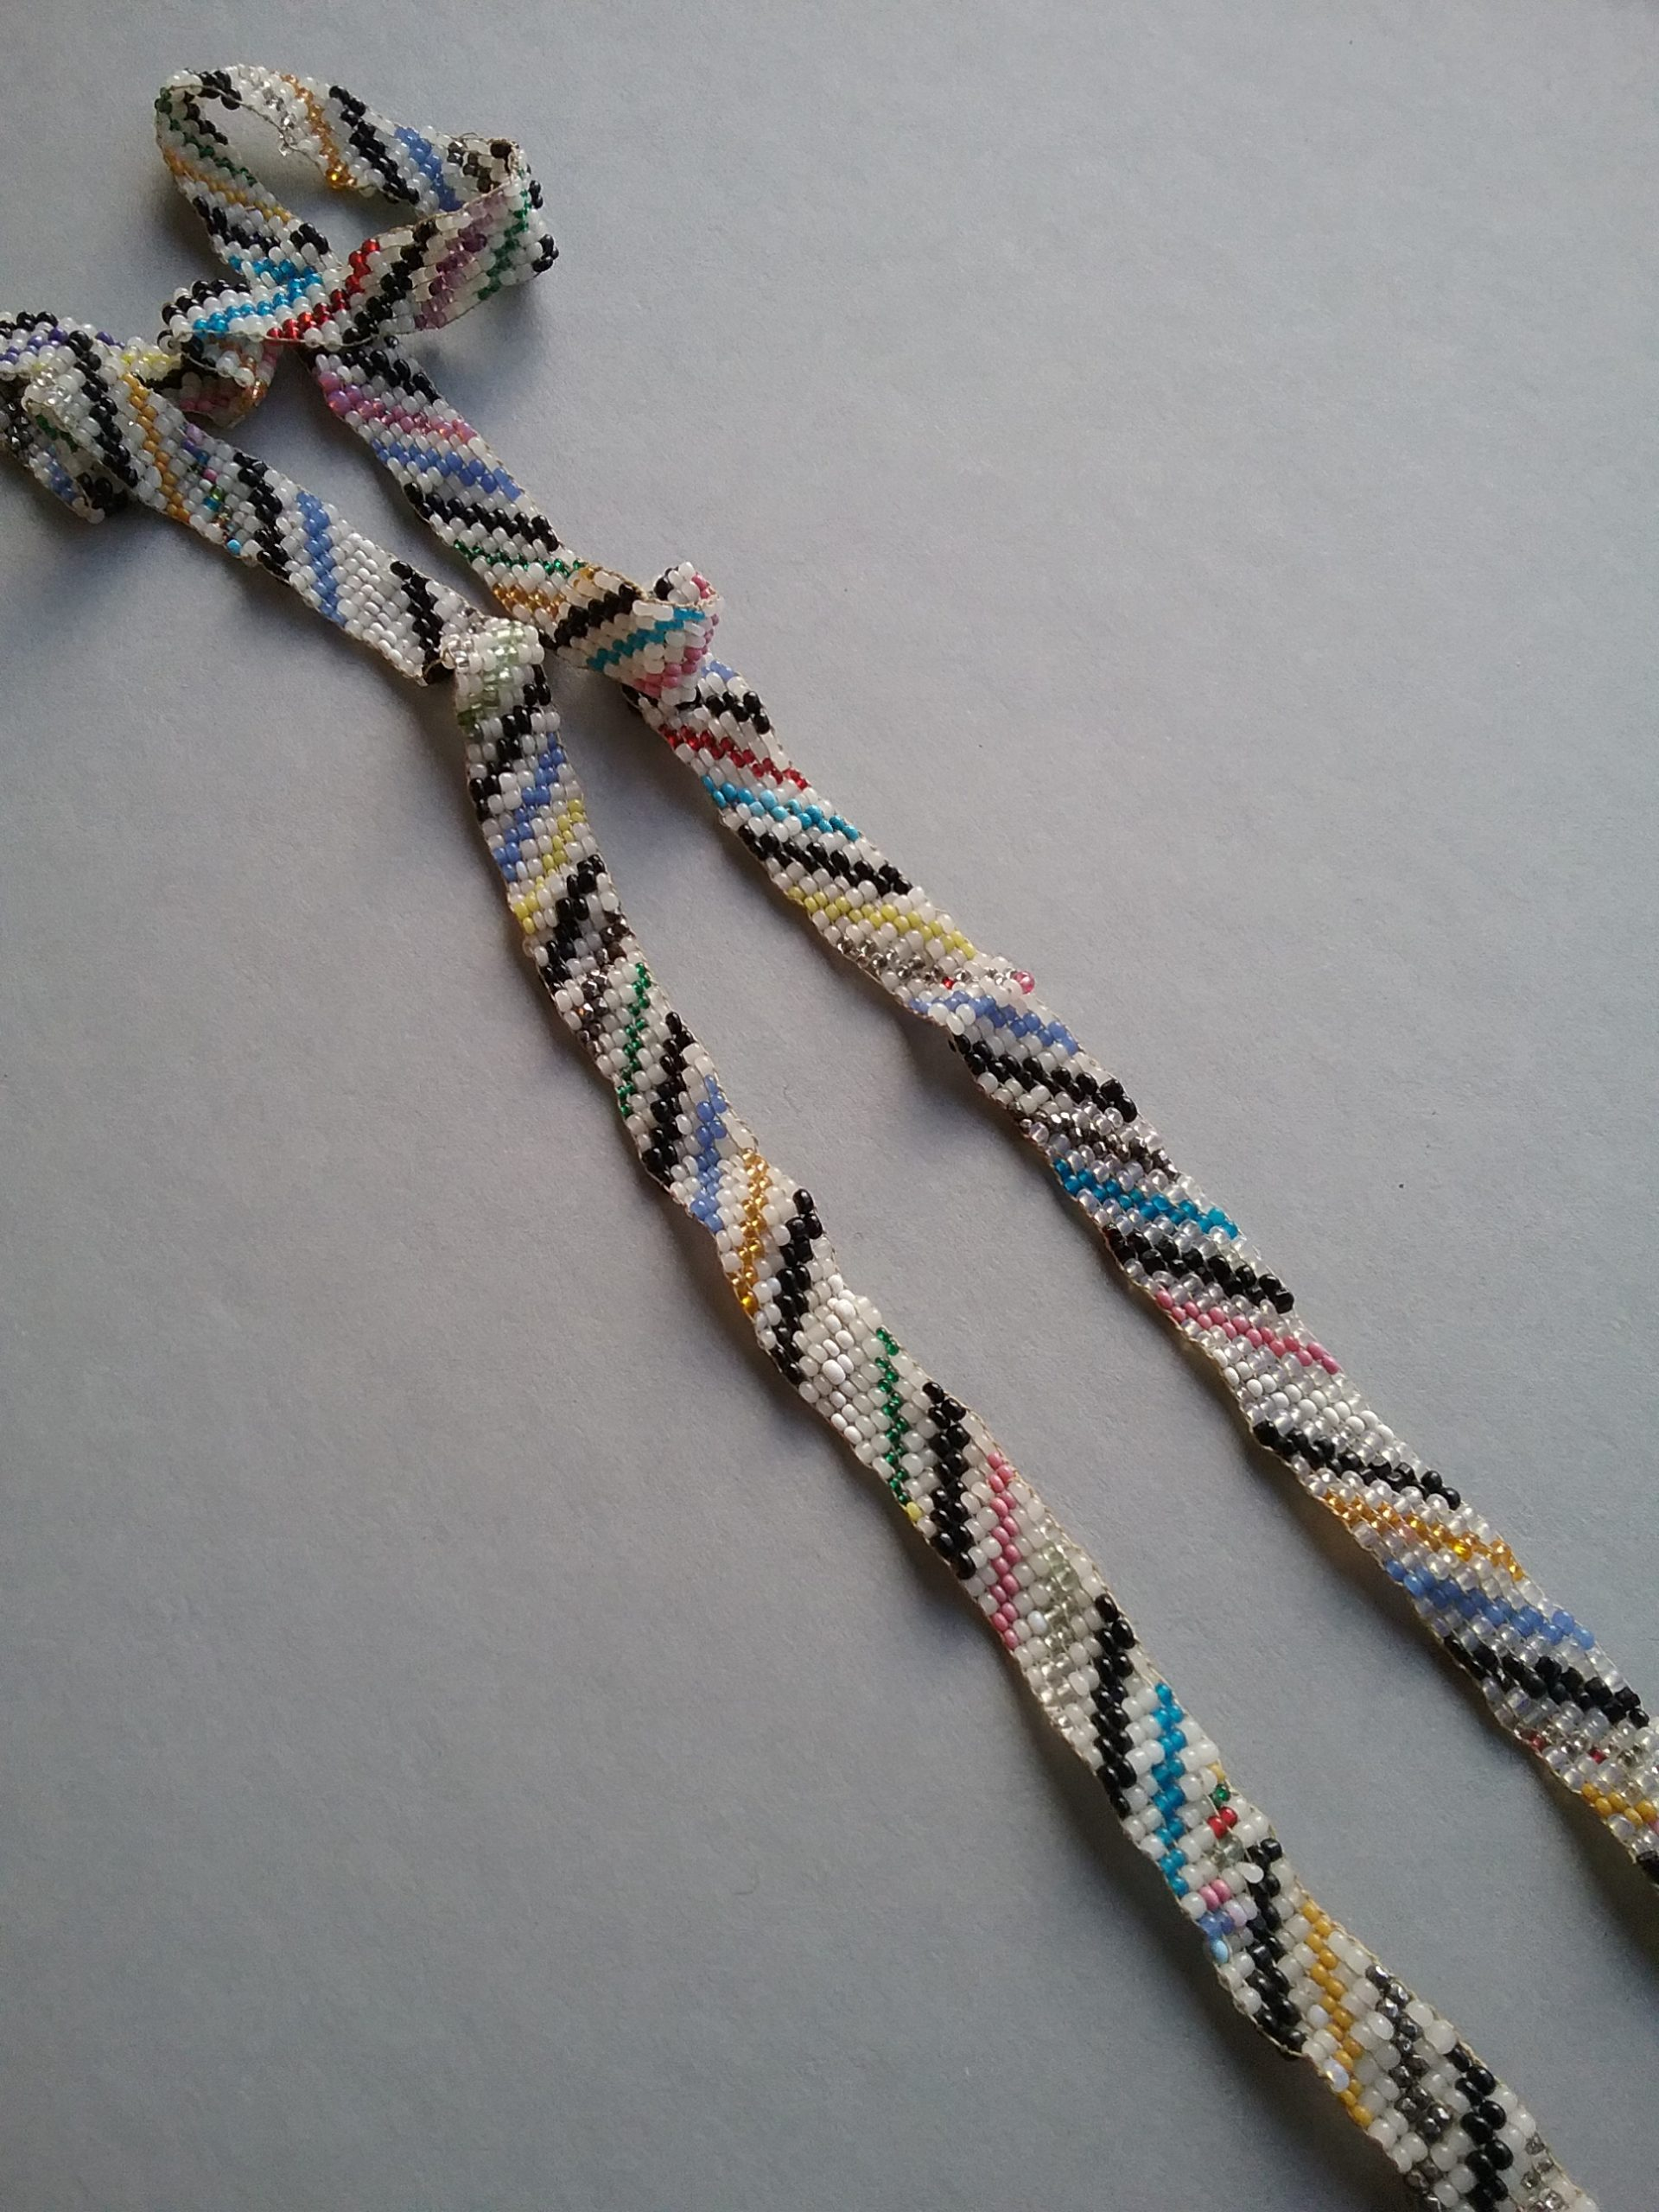 Narrow loom-woven band of beads with a striped pattern from the Hill & Richardson store operated in the 1870s by E.G. Hill and Nathan Richardson. Likely of Ojibwe origin. MCHS collections, #1945.76.